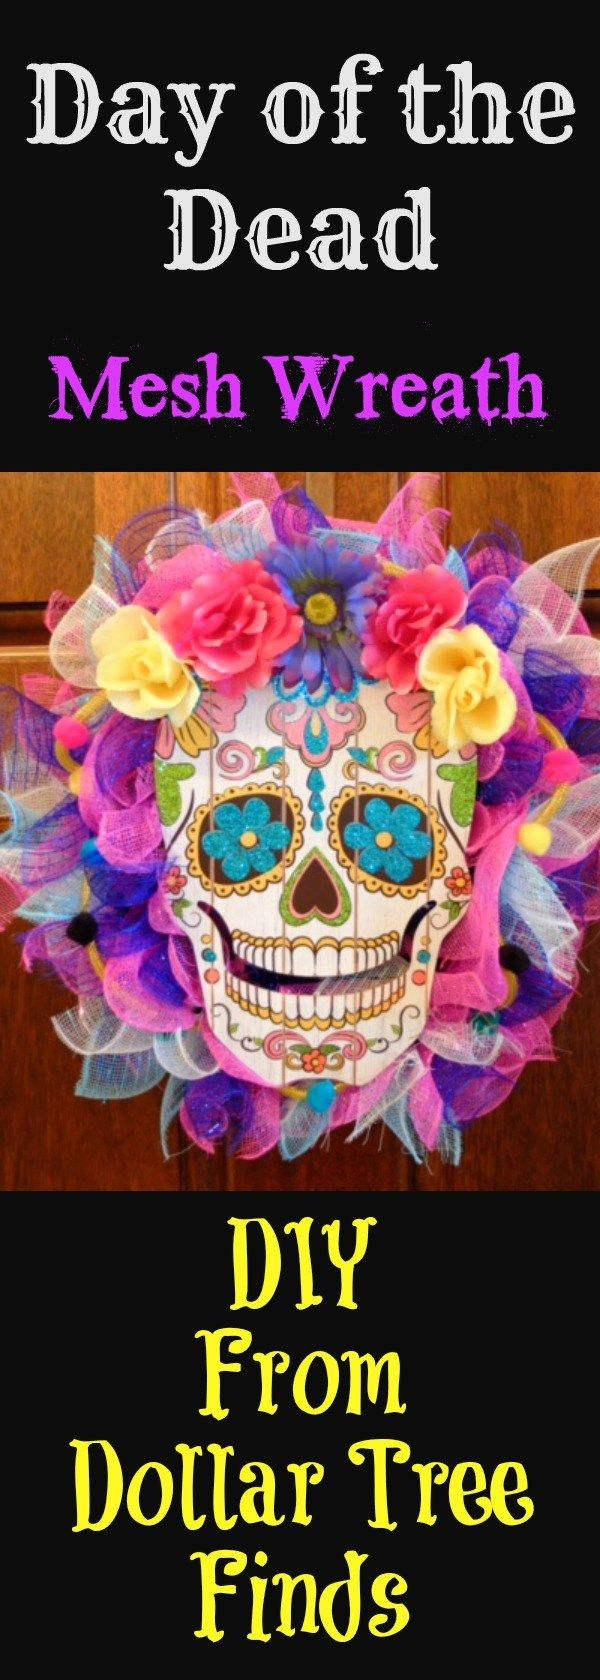 Day of the Dead Mesh Wreath...DIY From Dollar Tree Finds - Channelling Dolly